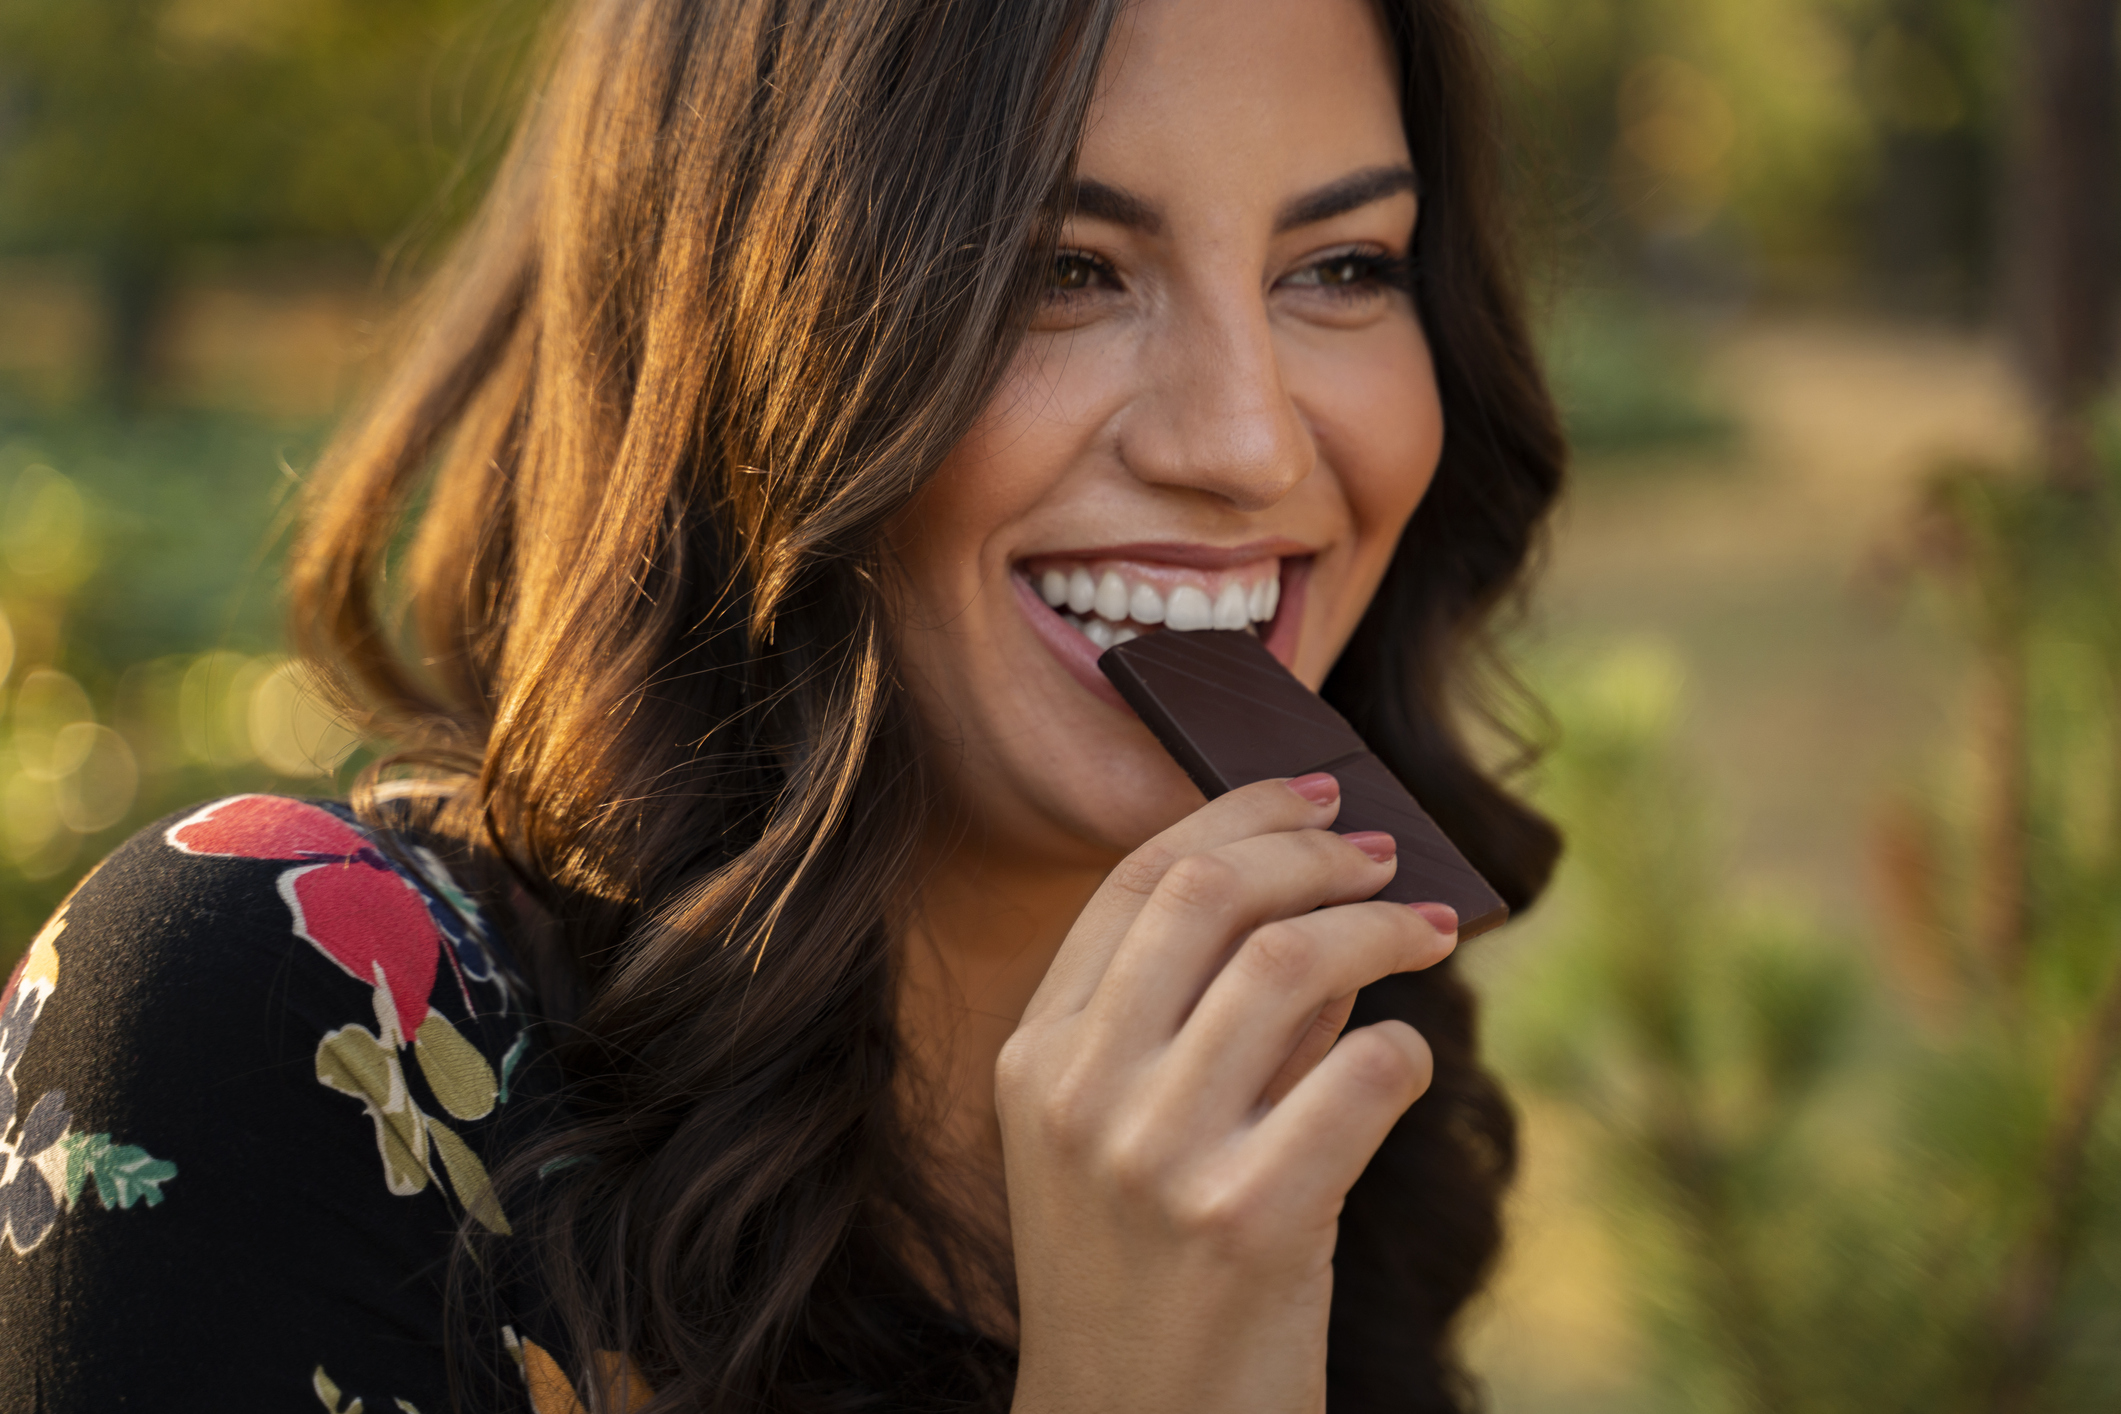 For more heart protection, eat more chocolate